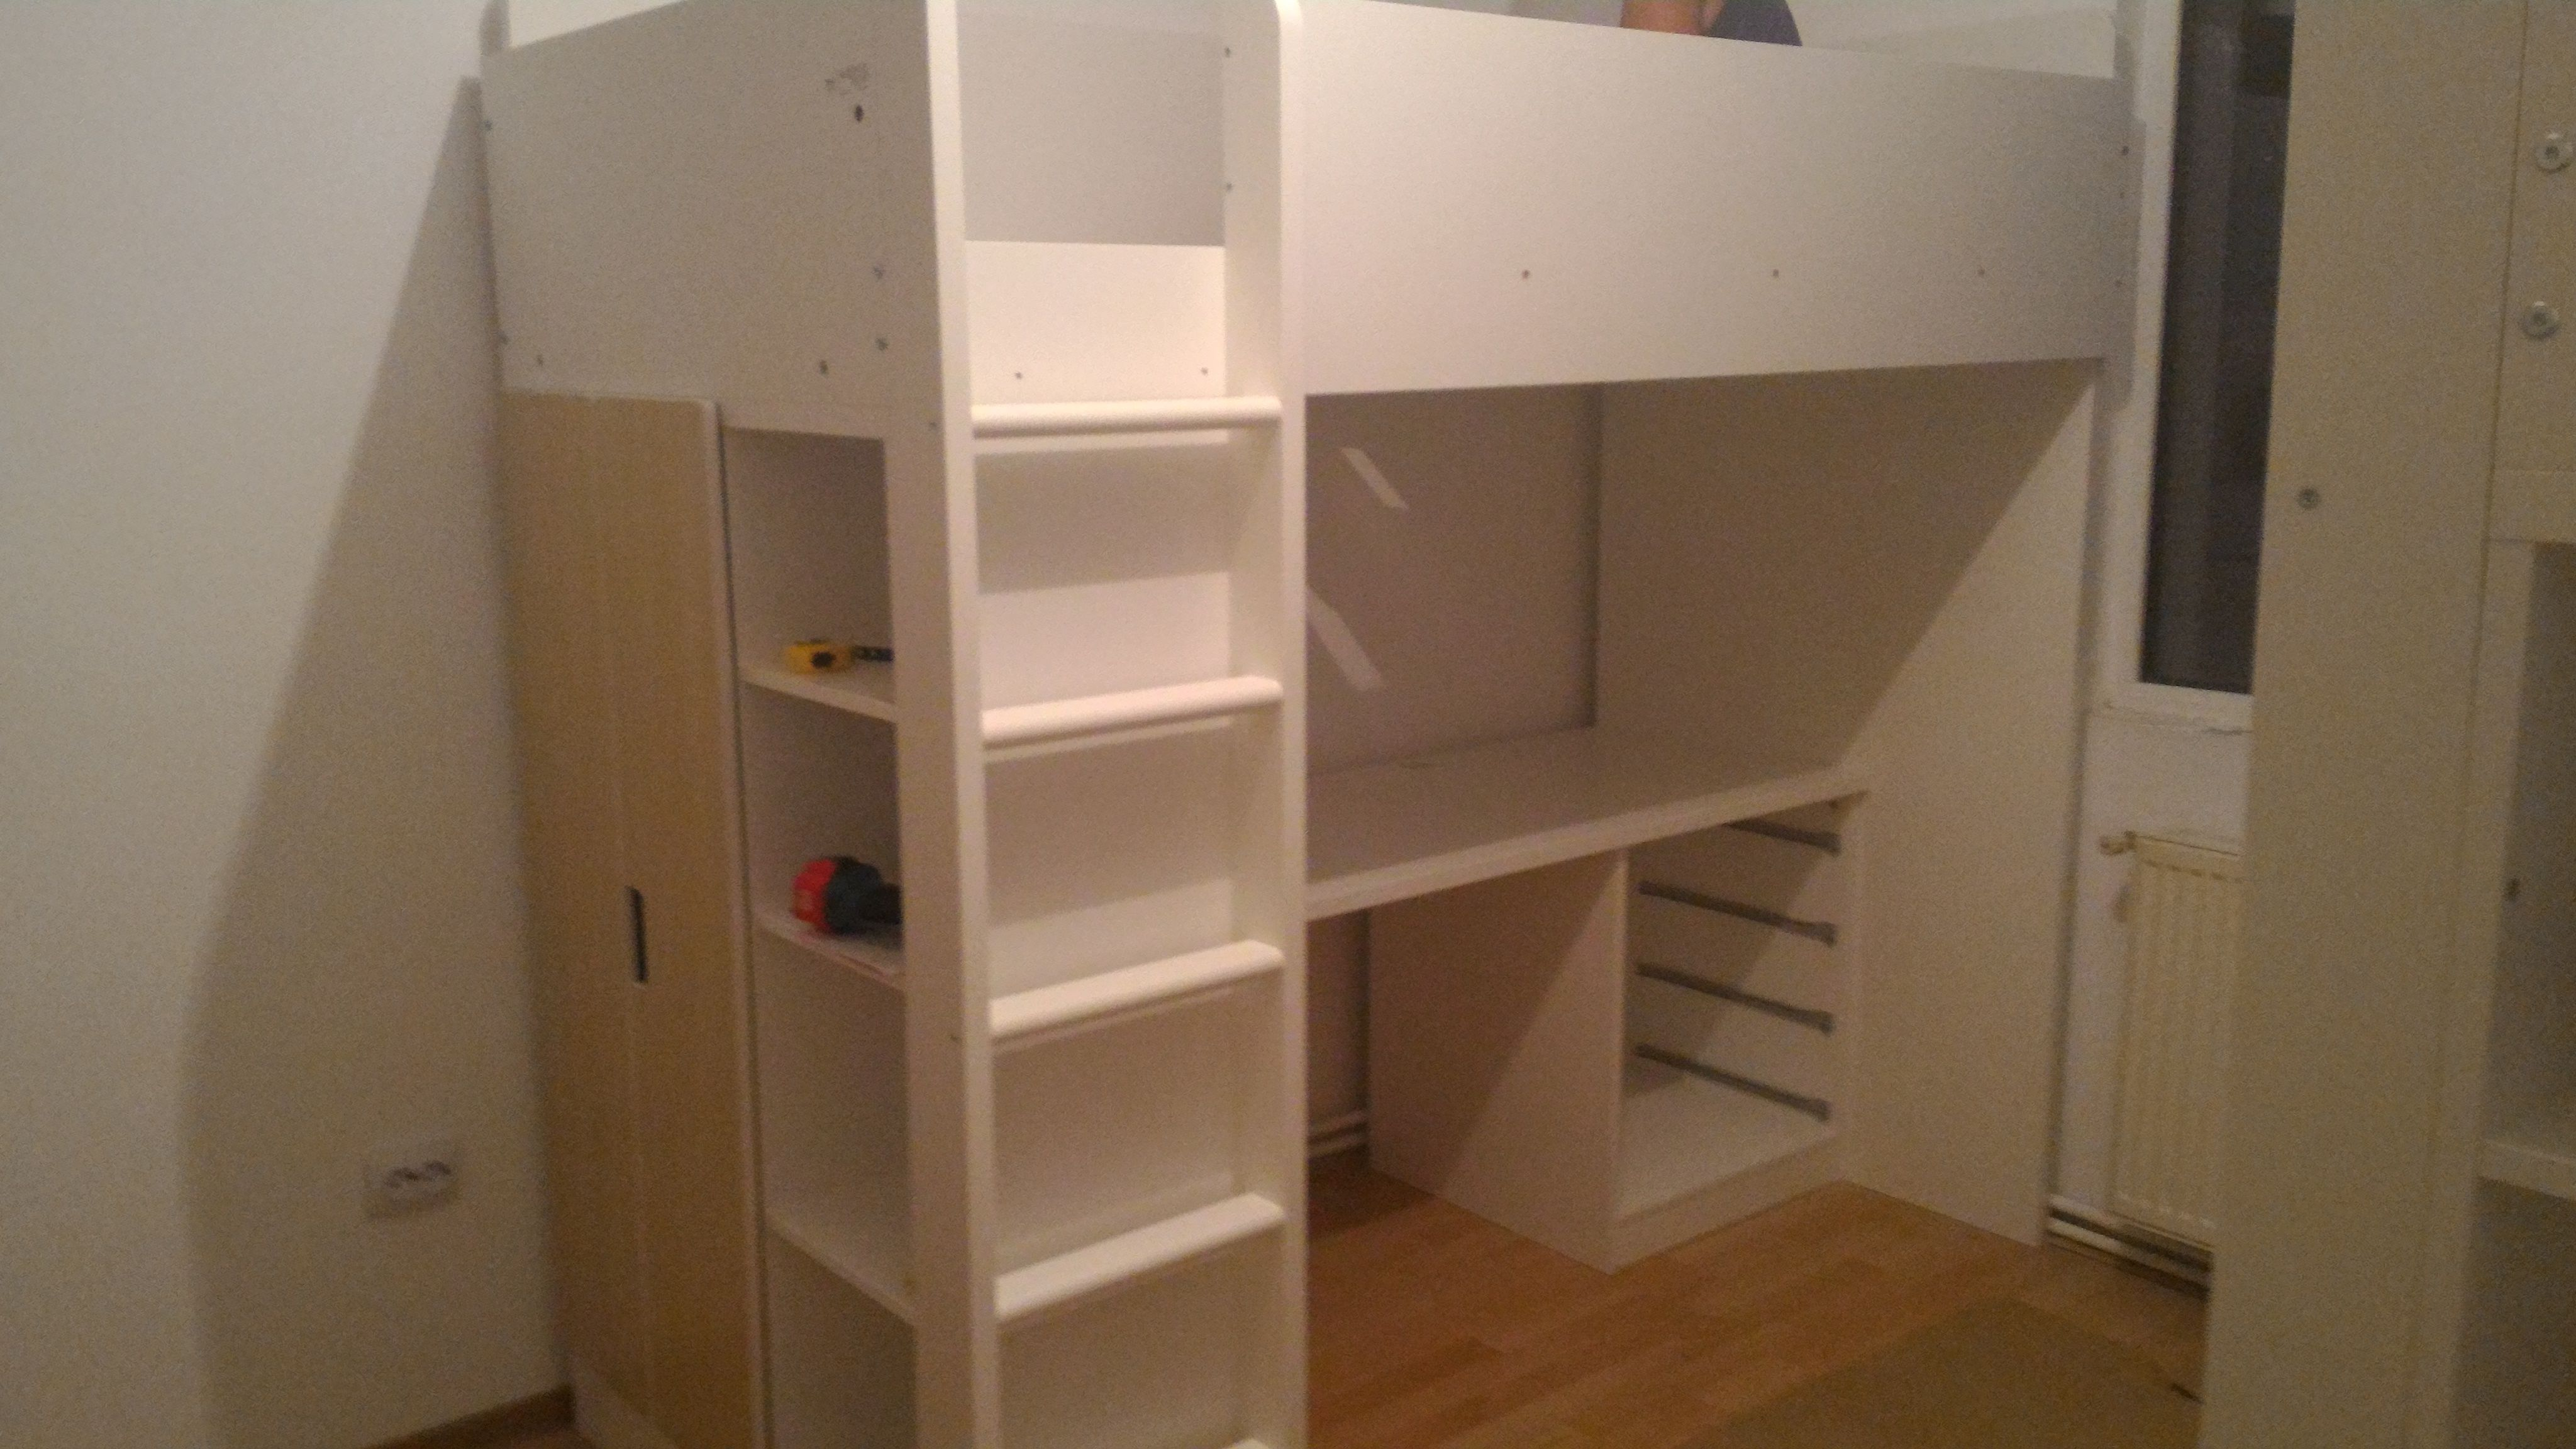 Mirroring An Ikea Loft Bed Stuva Home Decor Stuva Loft Bed Bed